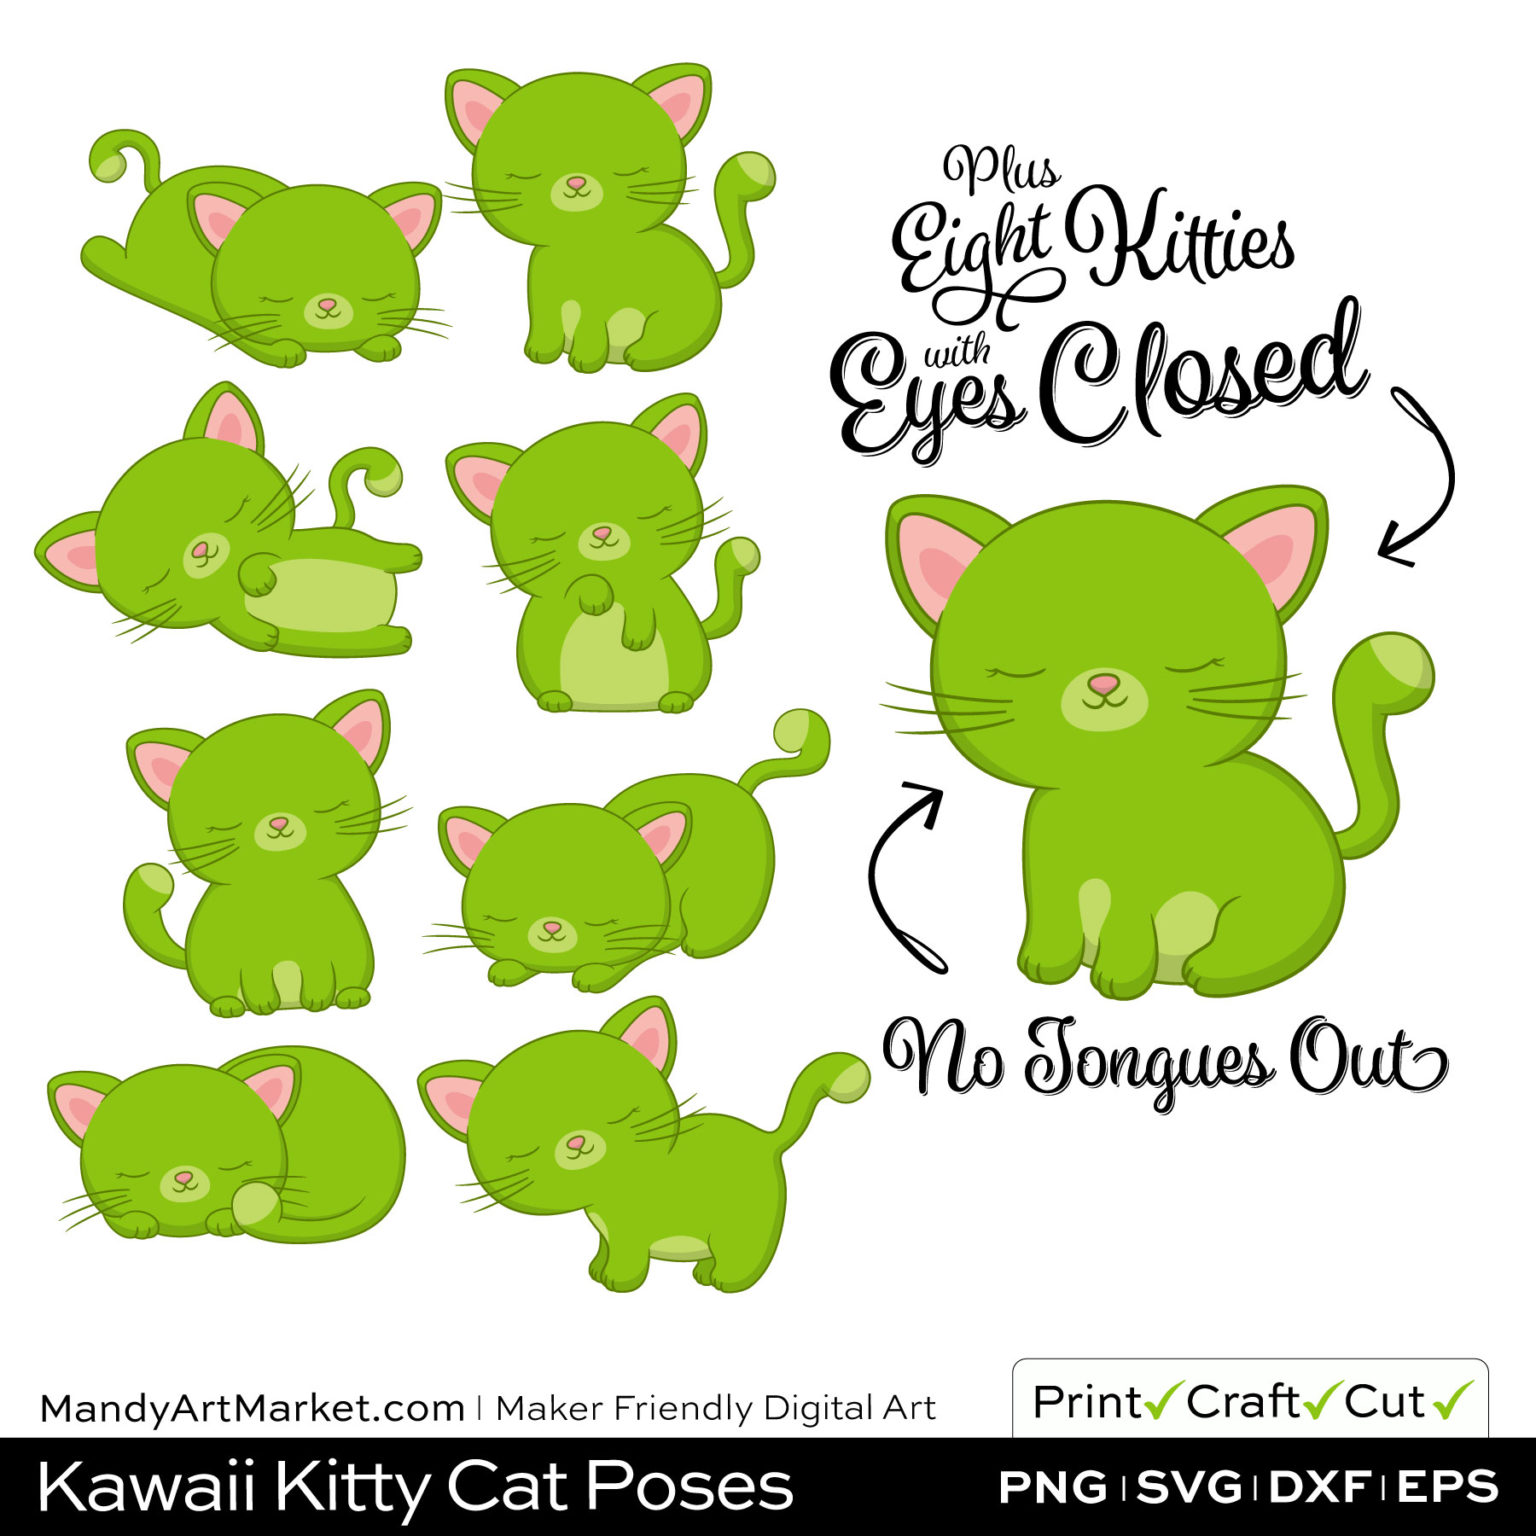 Lime Green Kawaii Kitty Cat Poses Clipart PNGs Included in Download